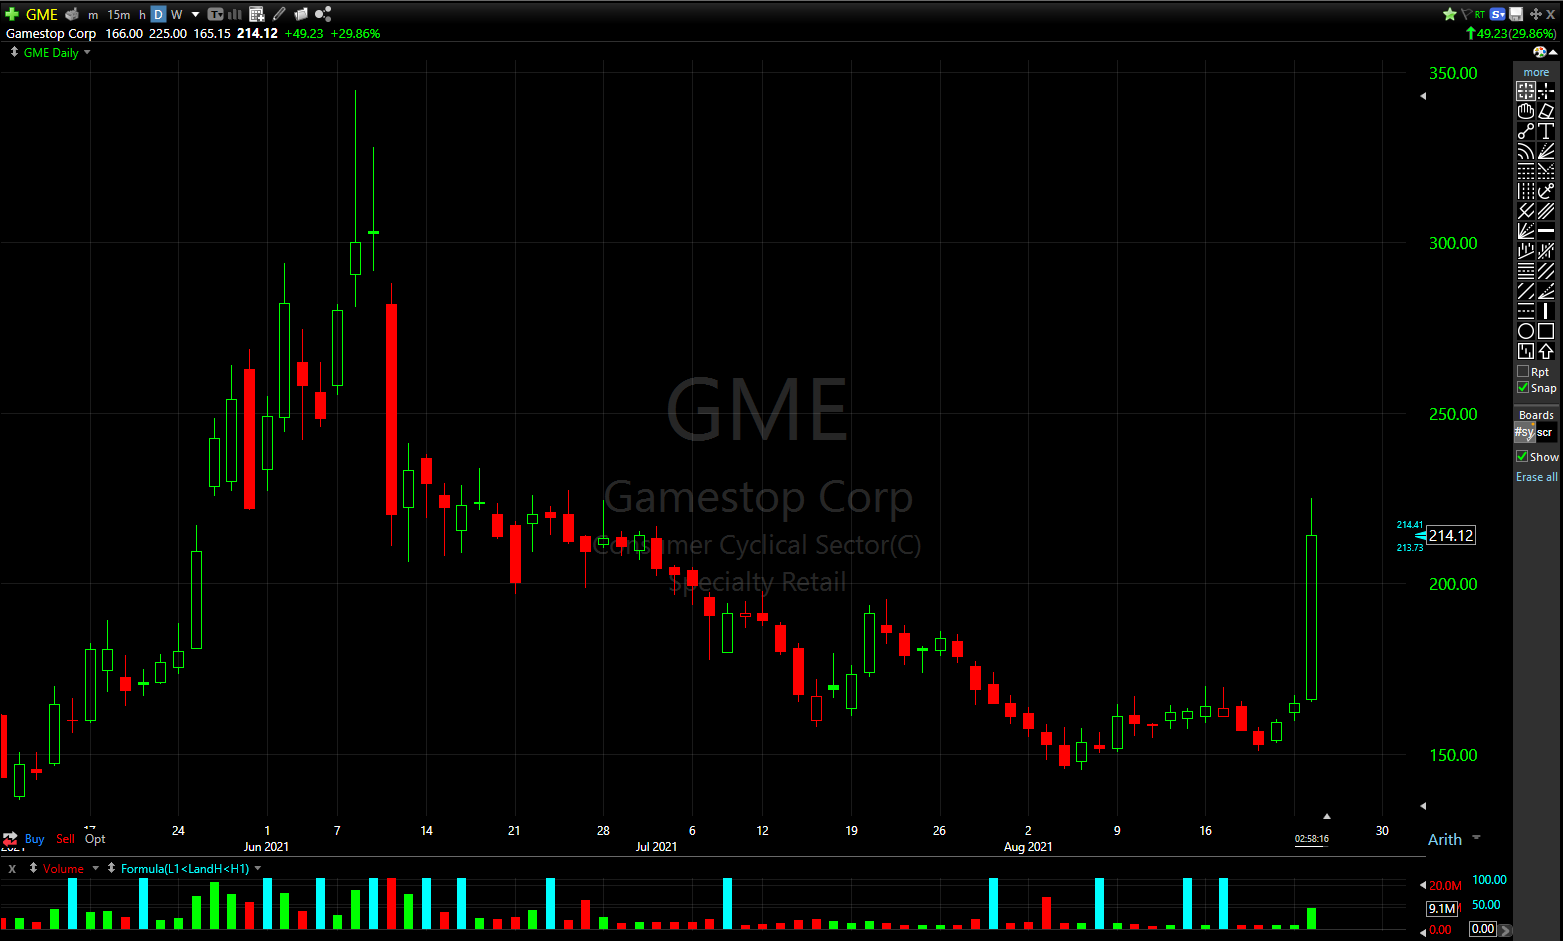 GameStop (GME) shares are having their best daily performance of the summer. With the stock up 30% on the day.